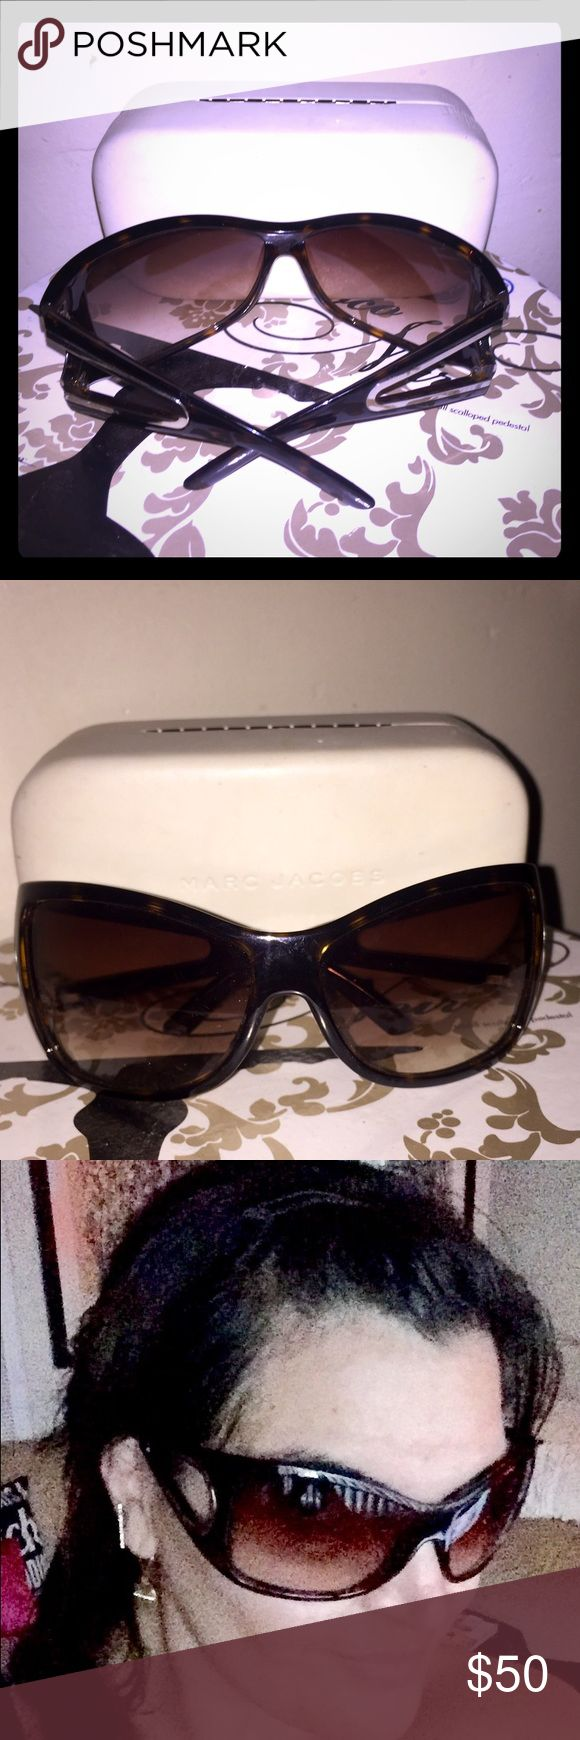 Marc Jacobs Women's Sunglasses Gorgeously glam Marc Jacobs glasses, w/ oversized square frames, a subtle Cateye shape & metallic cutout arms for sturdy, stylish protection. Tortoiseshell brown, gold-tone accents. Leather hard-shell snap case included. Case has a few scuffs; glasses are in excellent condition. Marc Jacobs Accessories Sunglasses